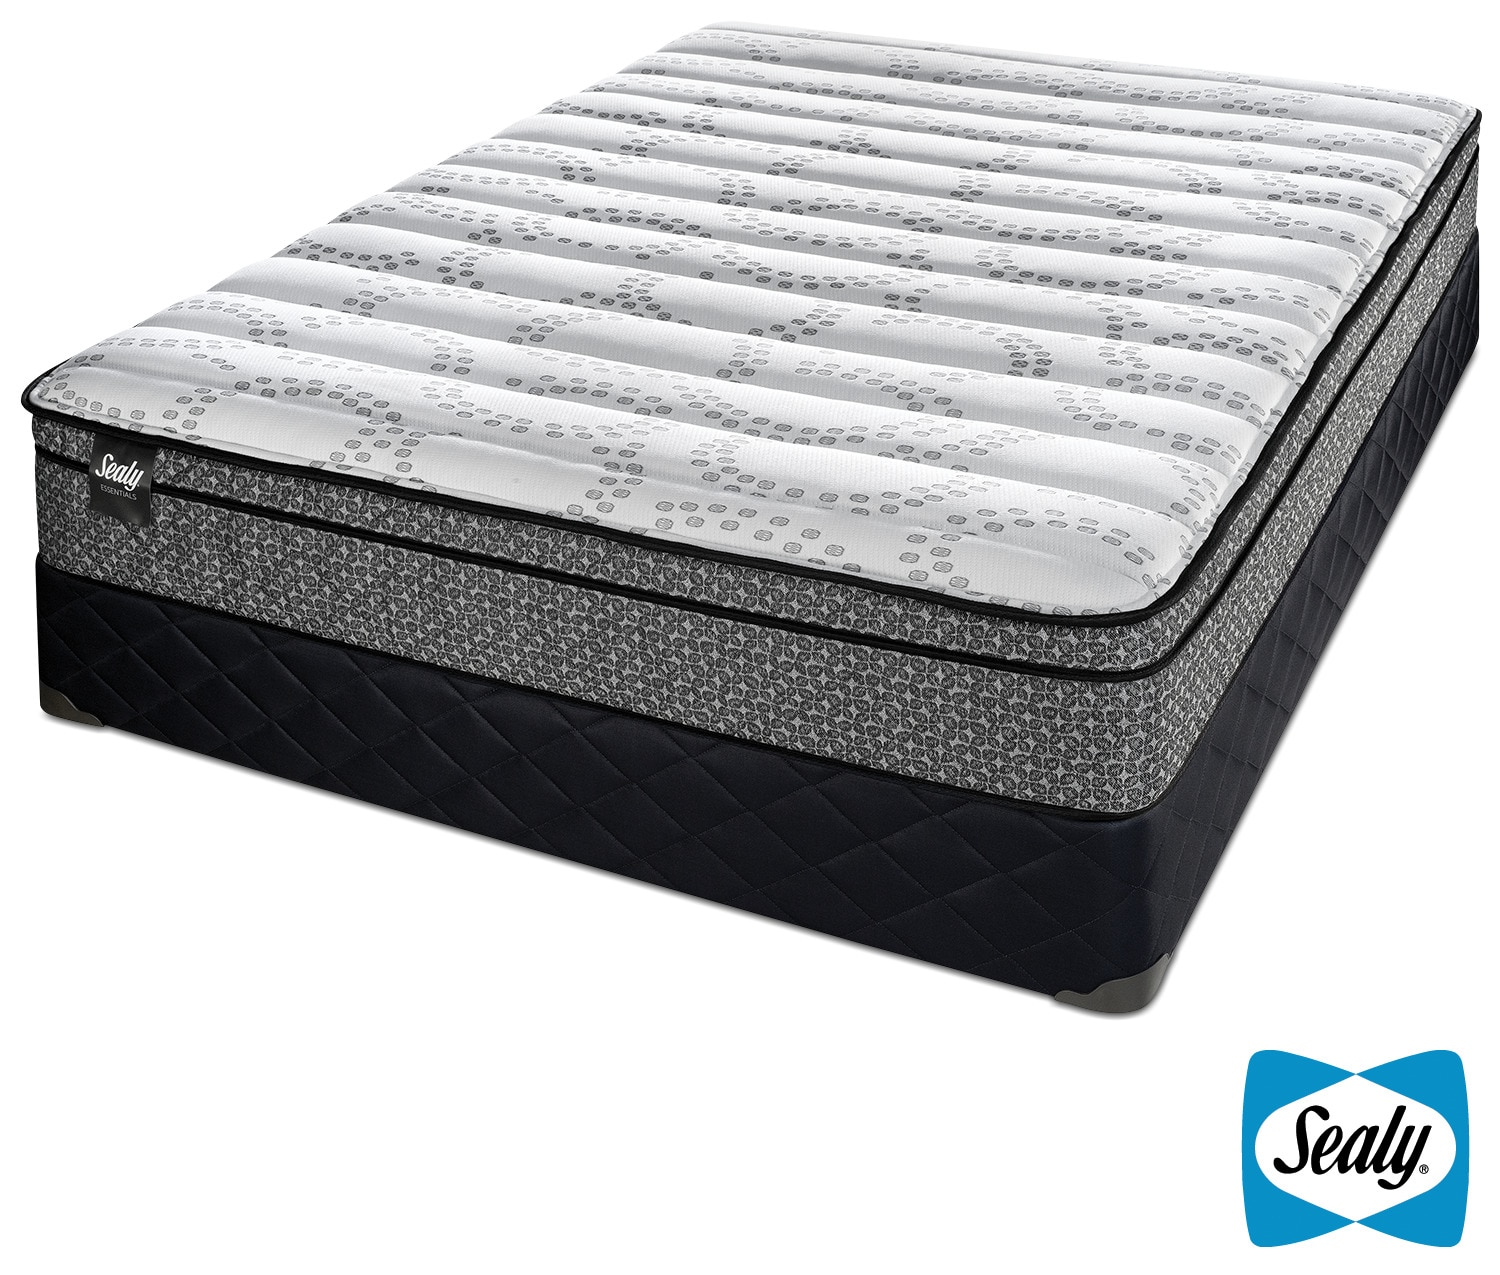 Sealy Phases Cushion Firm Queen Mattress and Boxspring Set